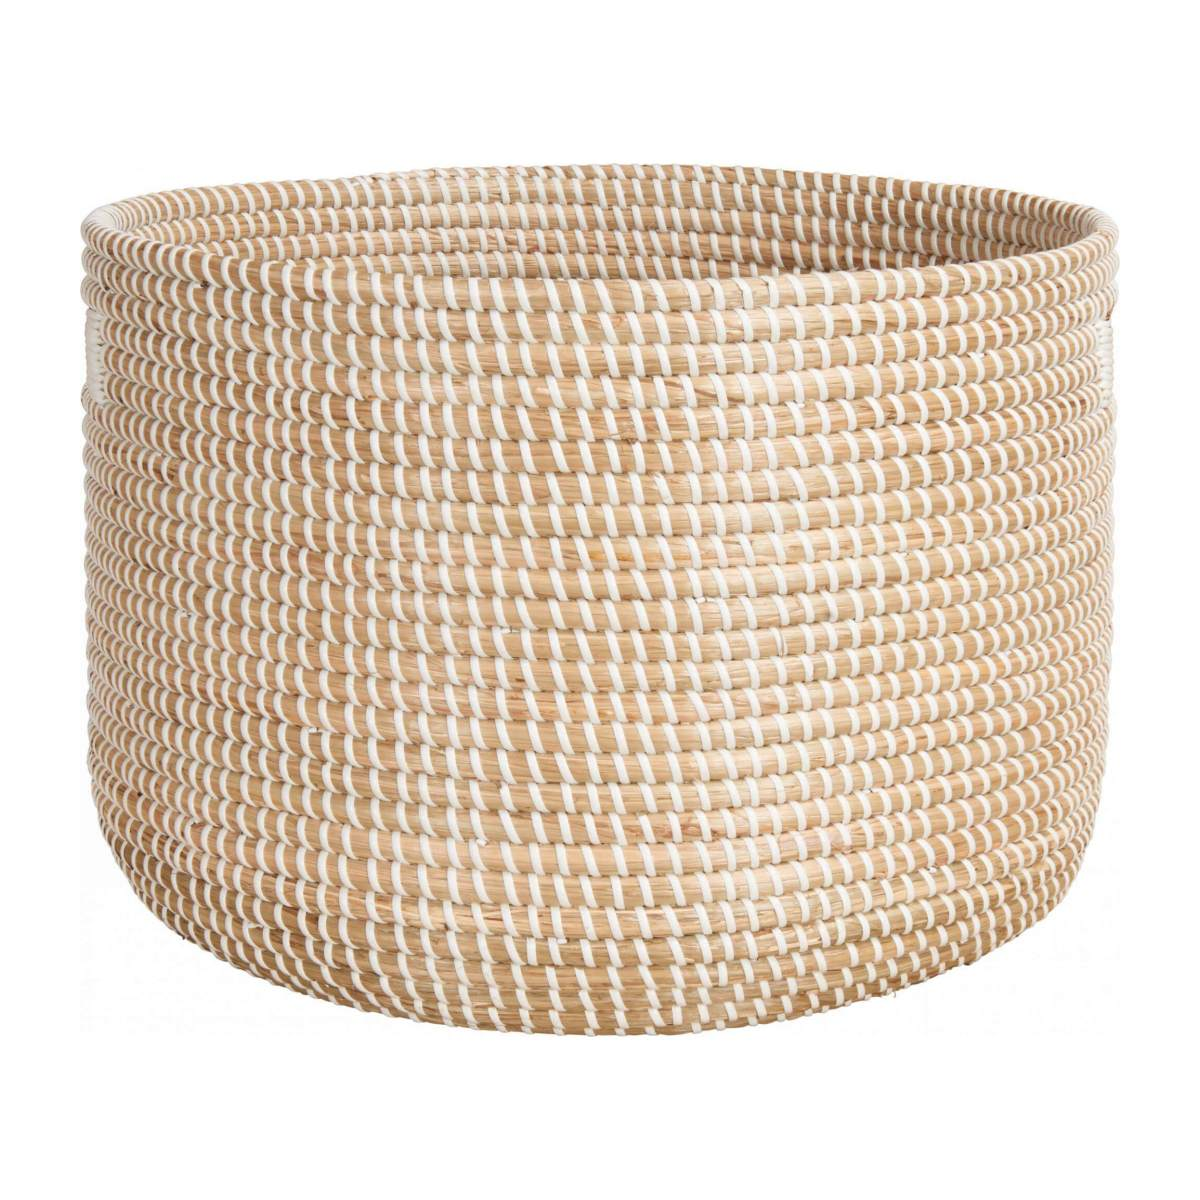 Basket 30cm with storage spaces made of seagrass n°2